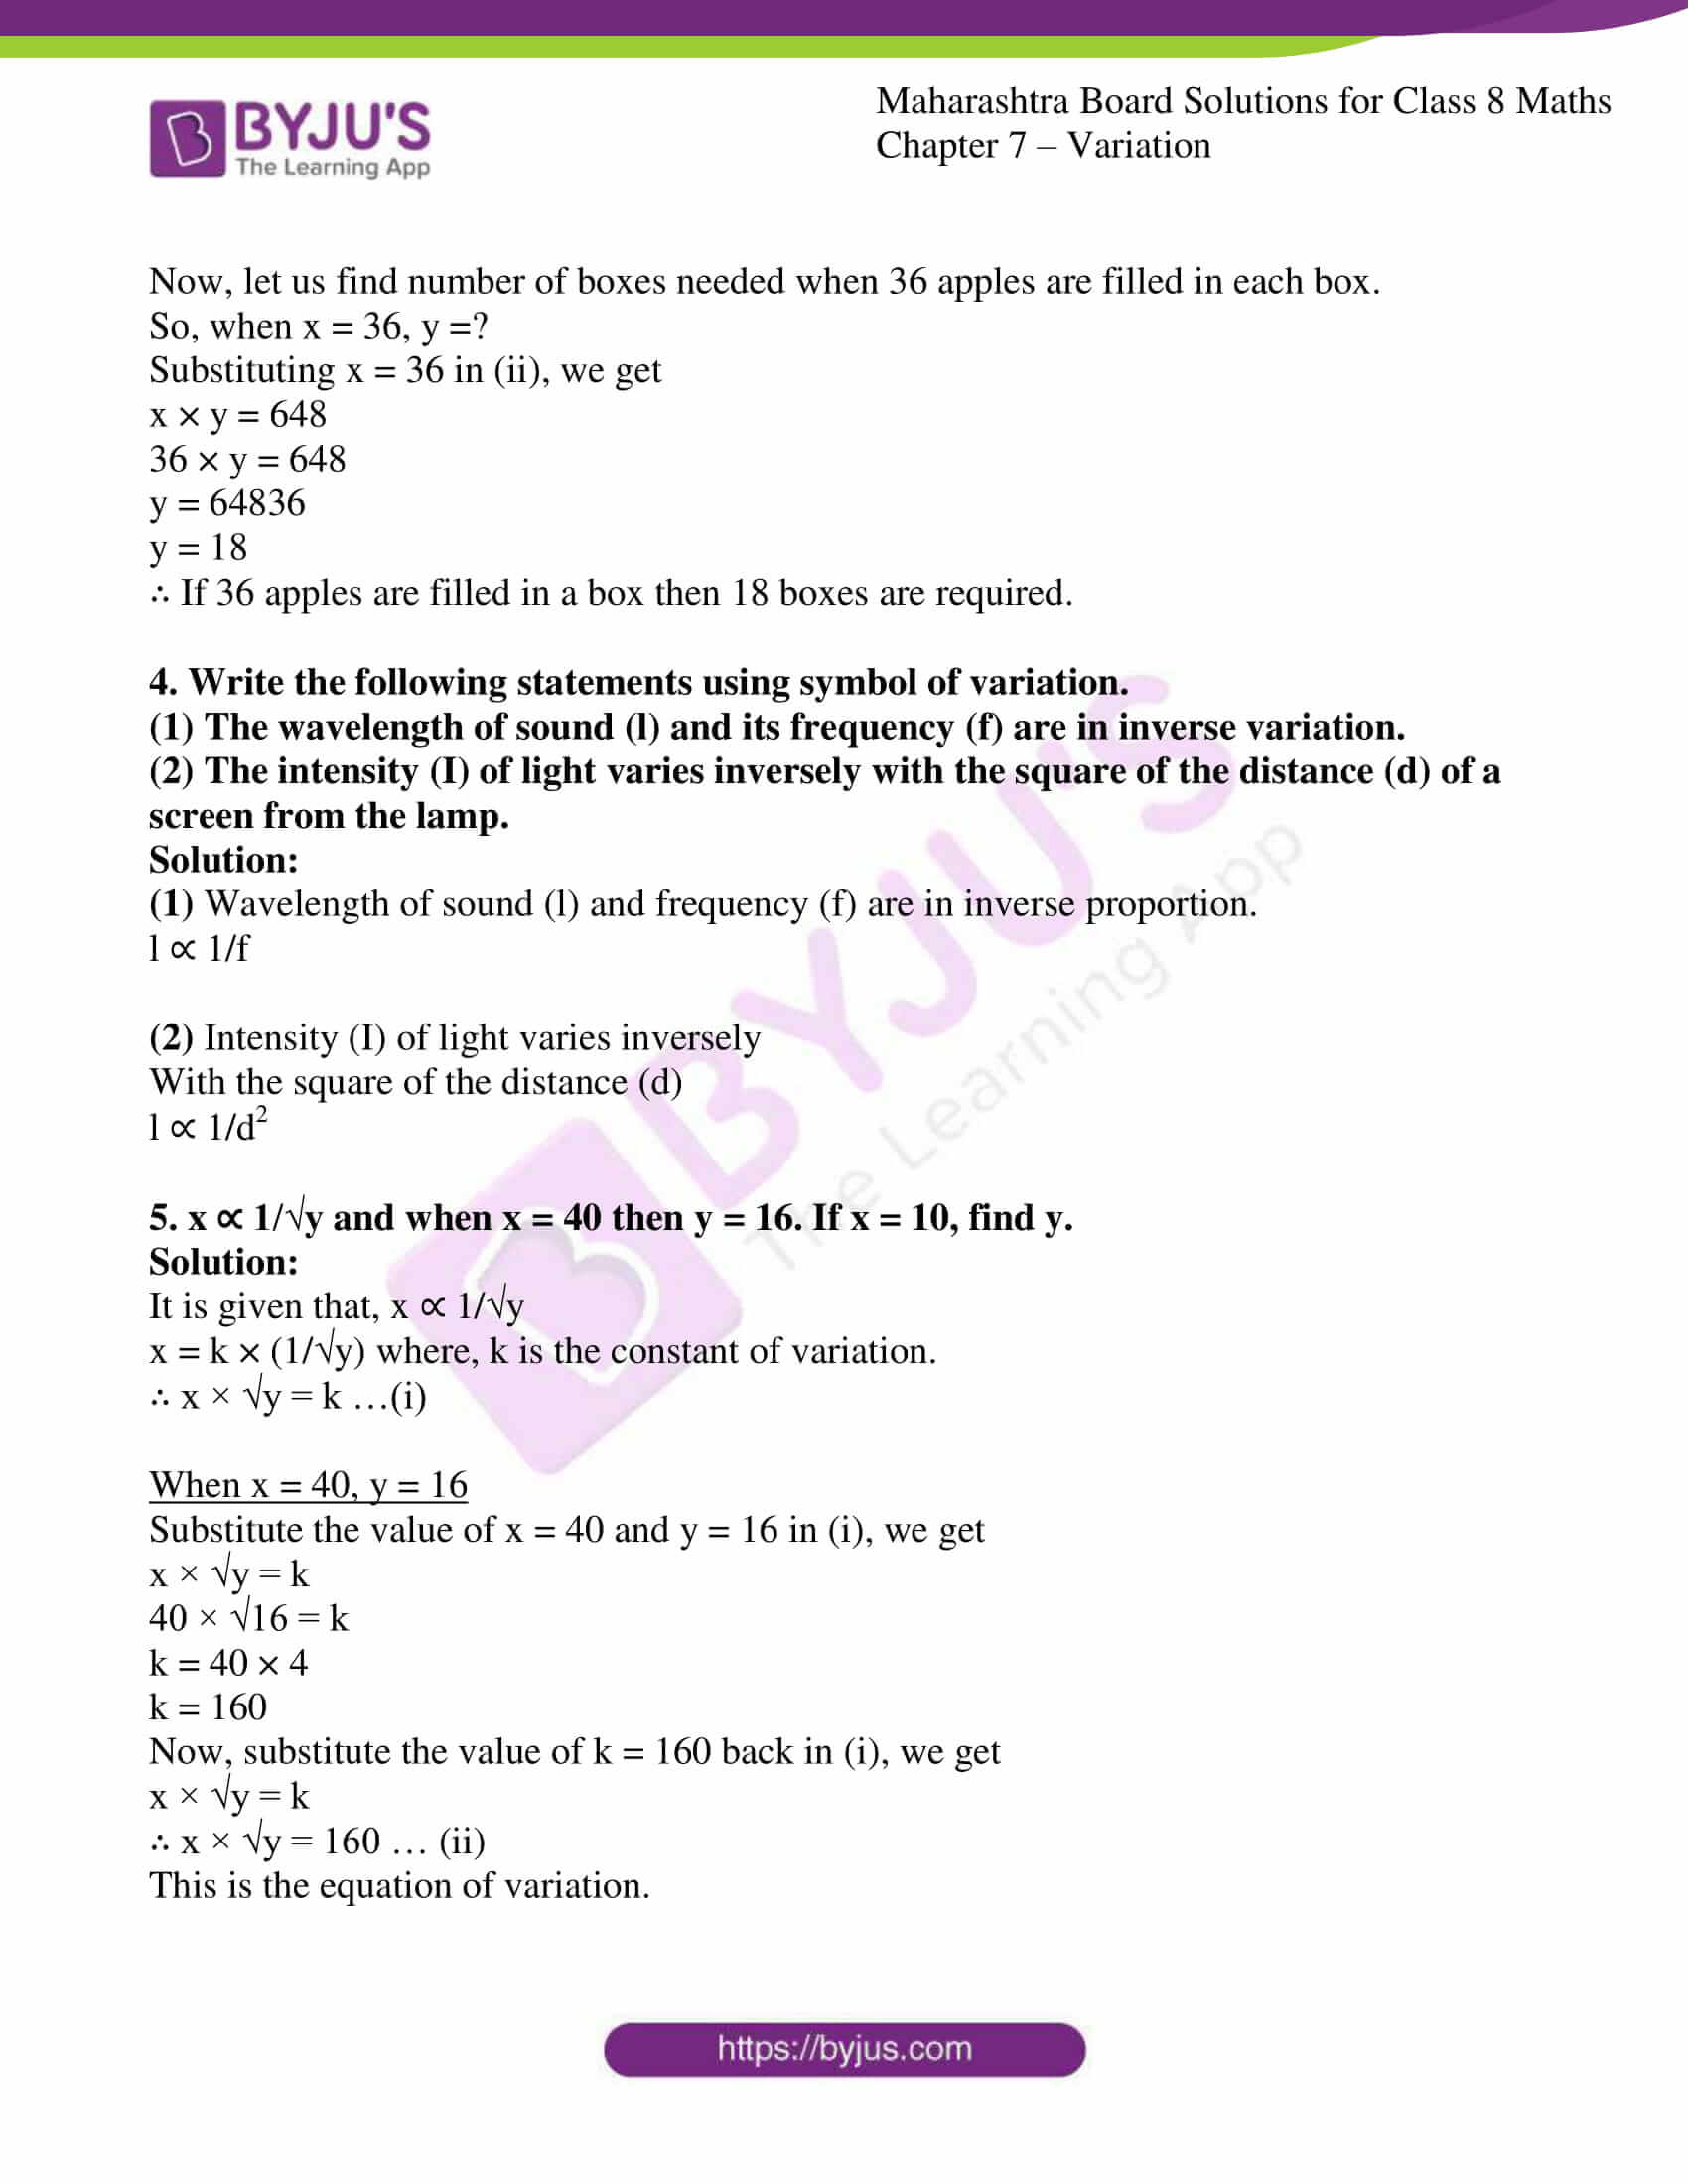 msbshse sol for class 8 maths chapter 7 10